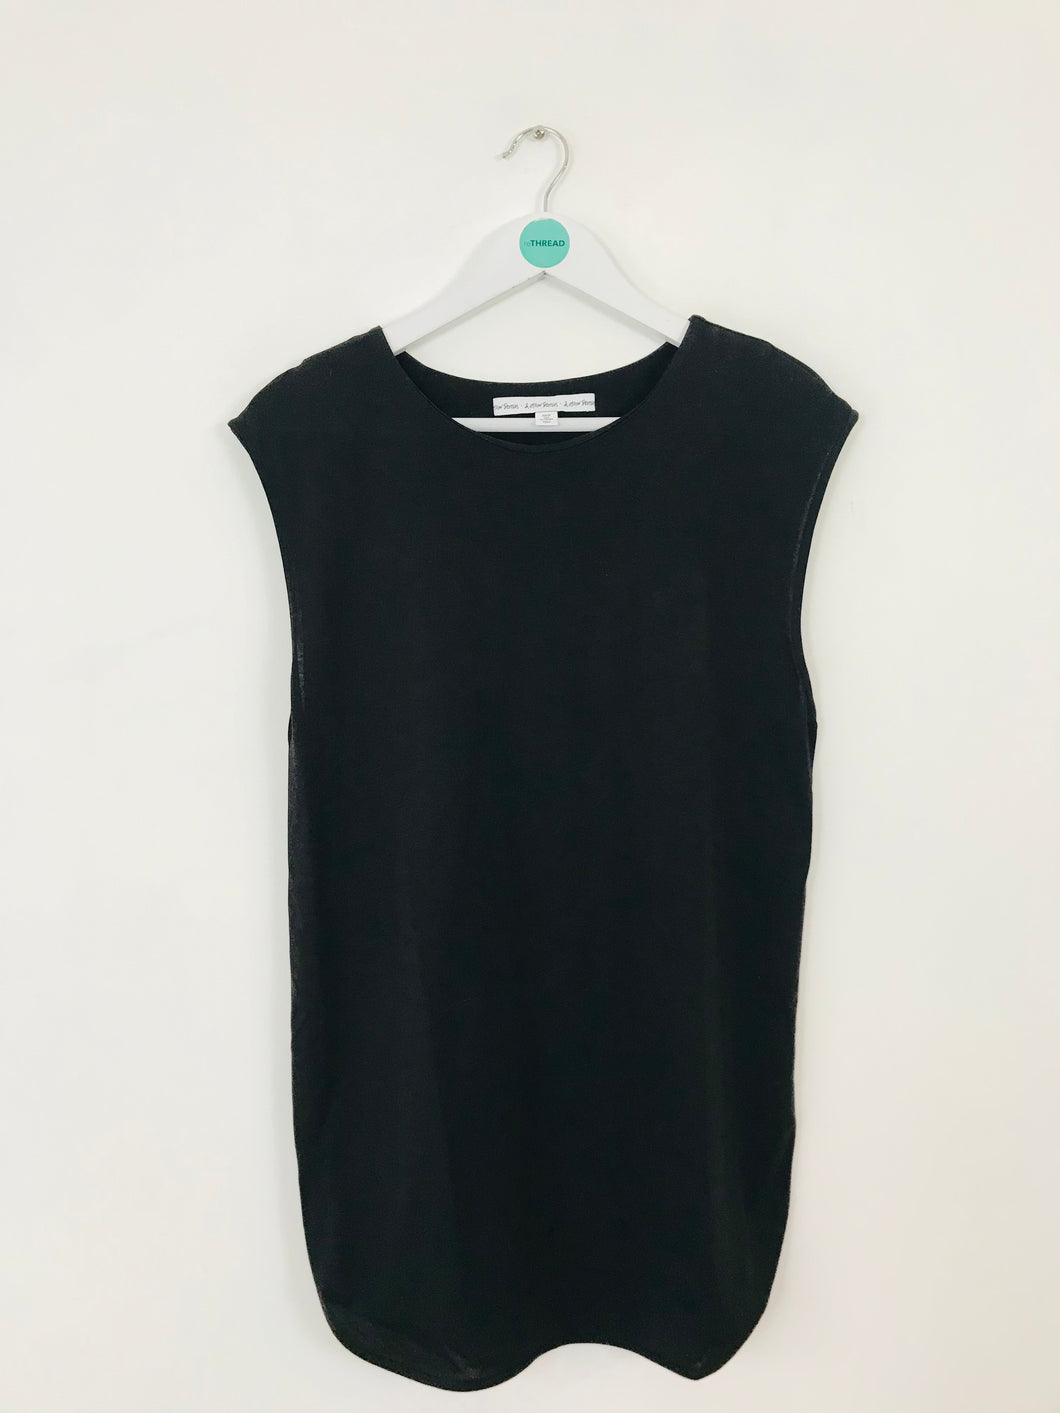 & Other Stories Women's Oversized Tank Top | UK10 | Black